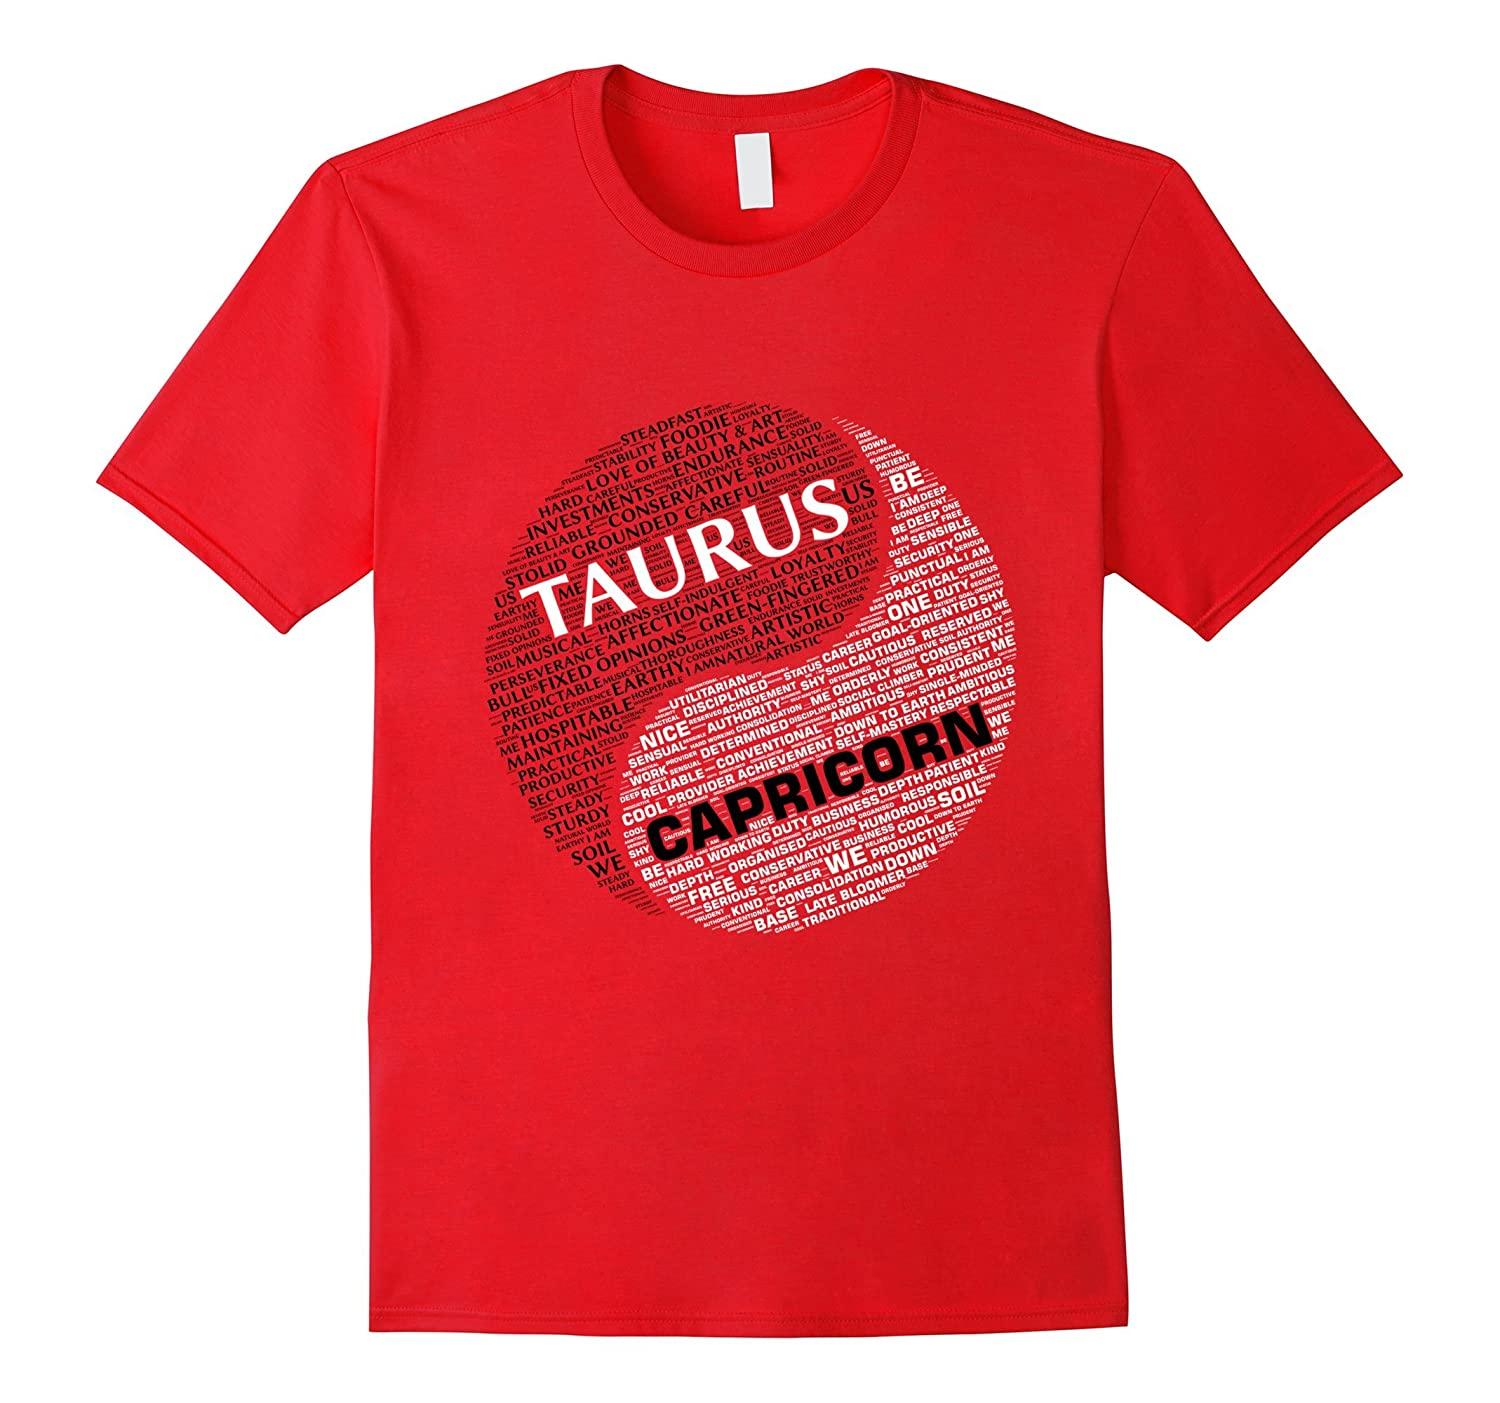 Zodiac Shirt for Taurus and Capricorn T-shirt-TD